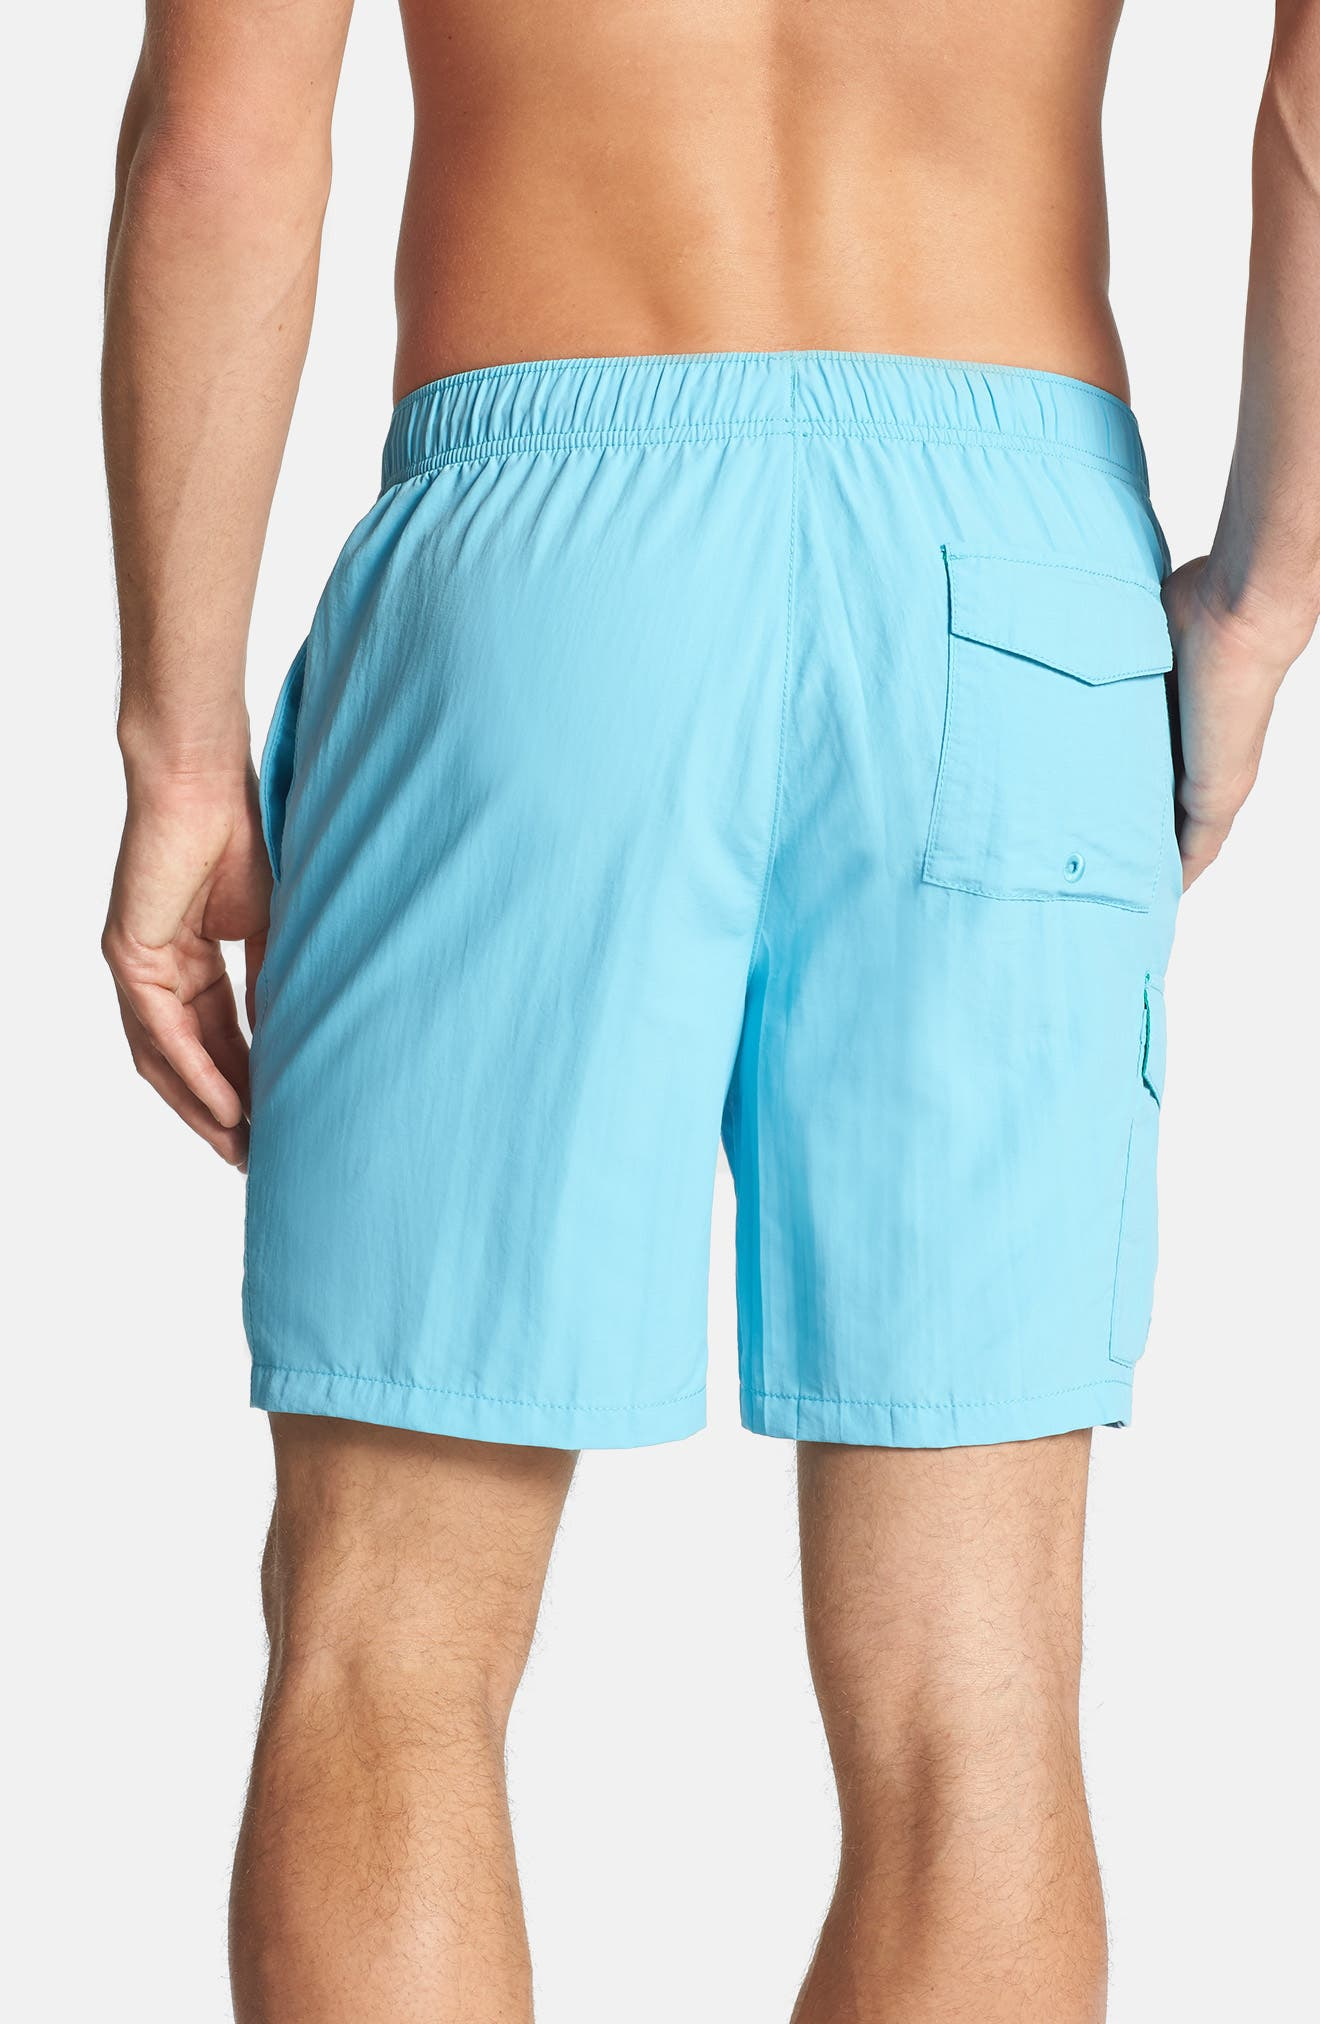 Naples Happy Go Cargo Swim Trunks,                             Alternate thumbnail 8, color,                             400